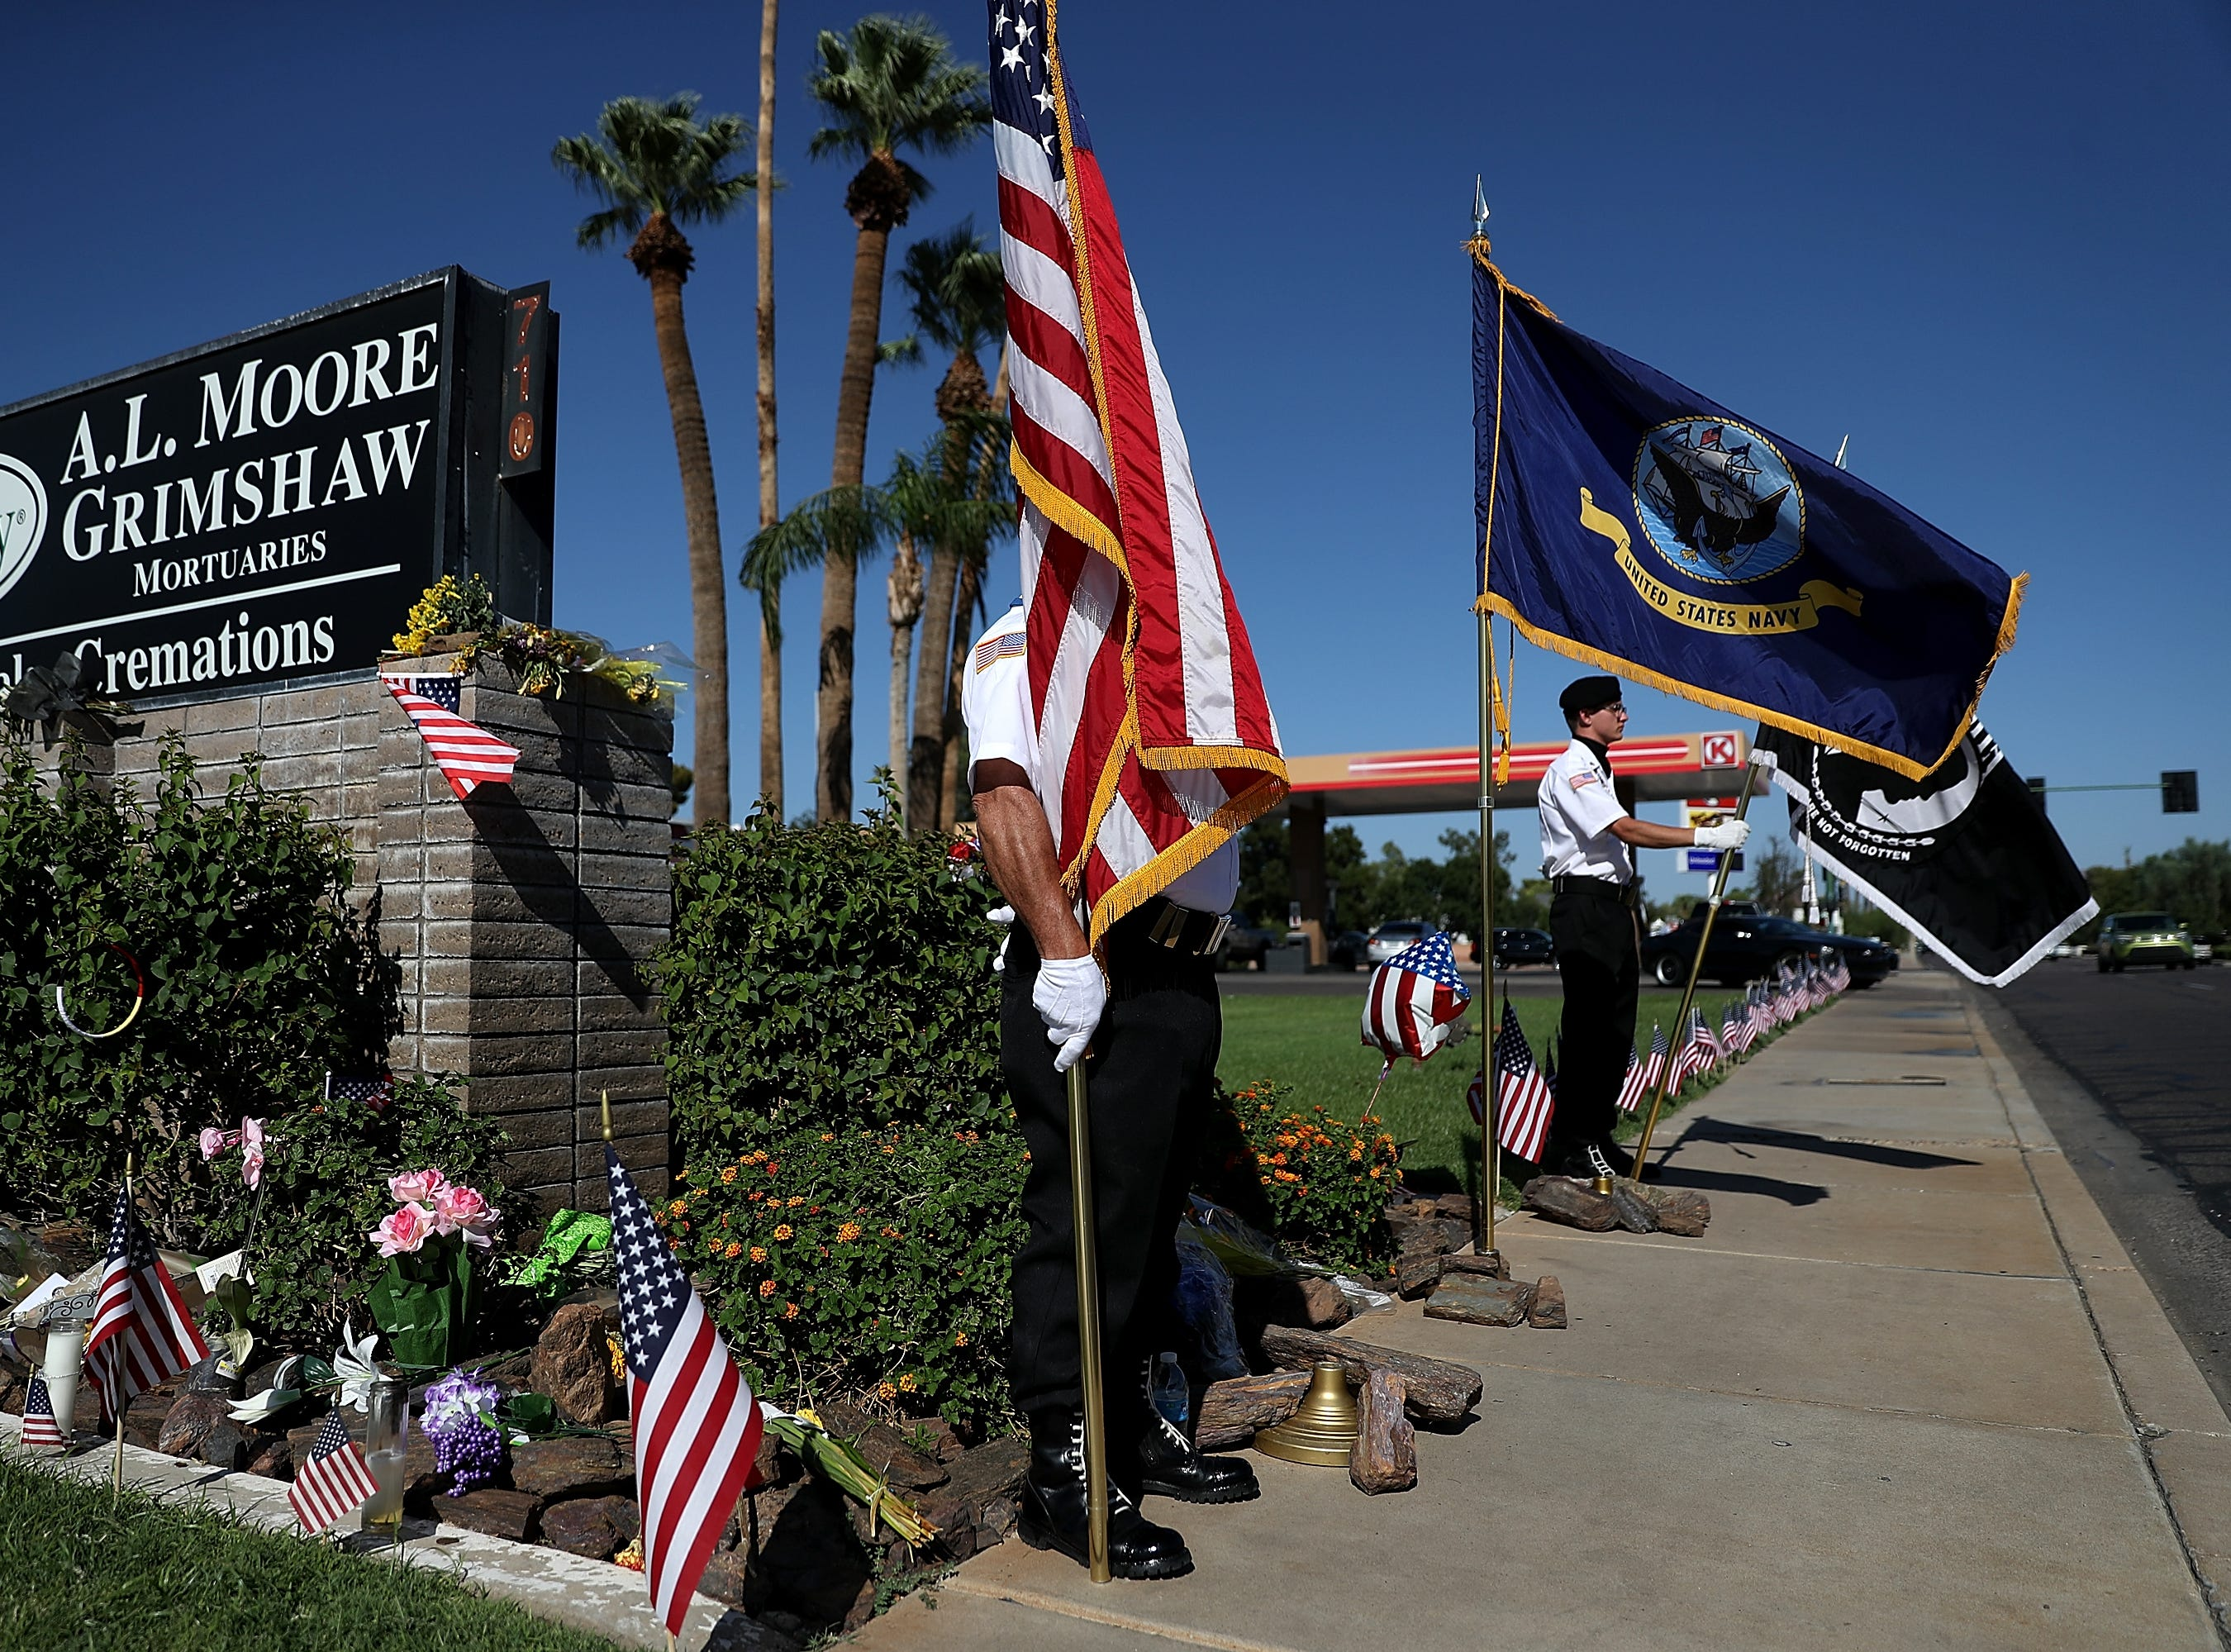 Members of the POW-MIA-KIA Honor Guard stand watch at a makeshift memorial for U.S. Sen. John McCain outside of the A.L. Moore Grimshaw mortuary on Aug. 27, 2018 in Phoenix, Ariz.